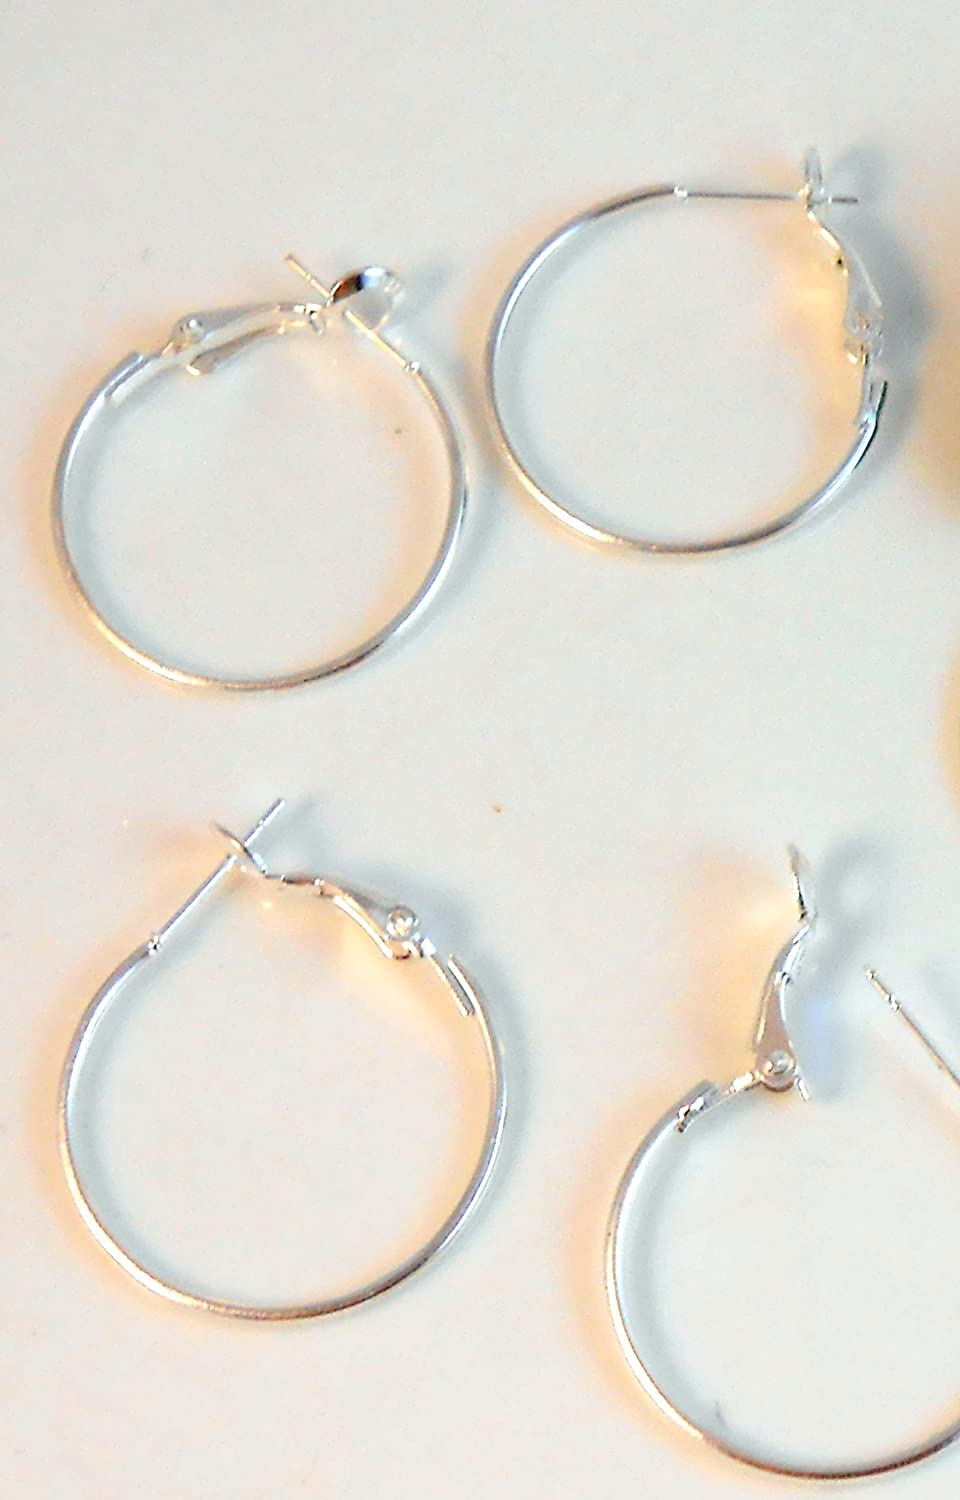 Pure Silver plated hoop Earring findings 99.9 4 Microns Thickness Dangle French Lever Ear Hoop Hooks beads Wholesale for fine jewelry making designers (6) A Sher' s creations